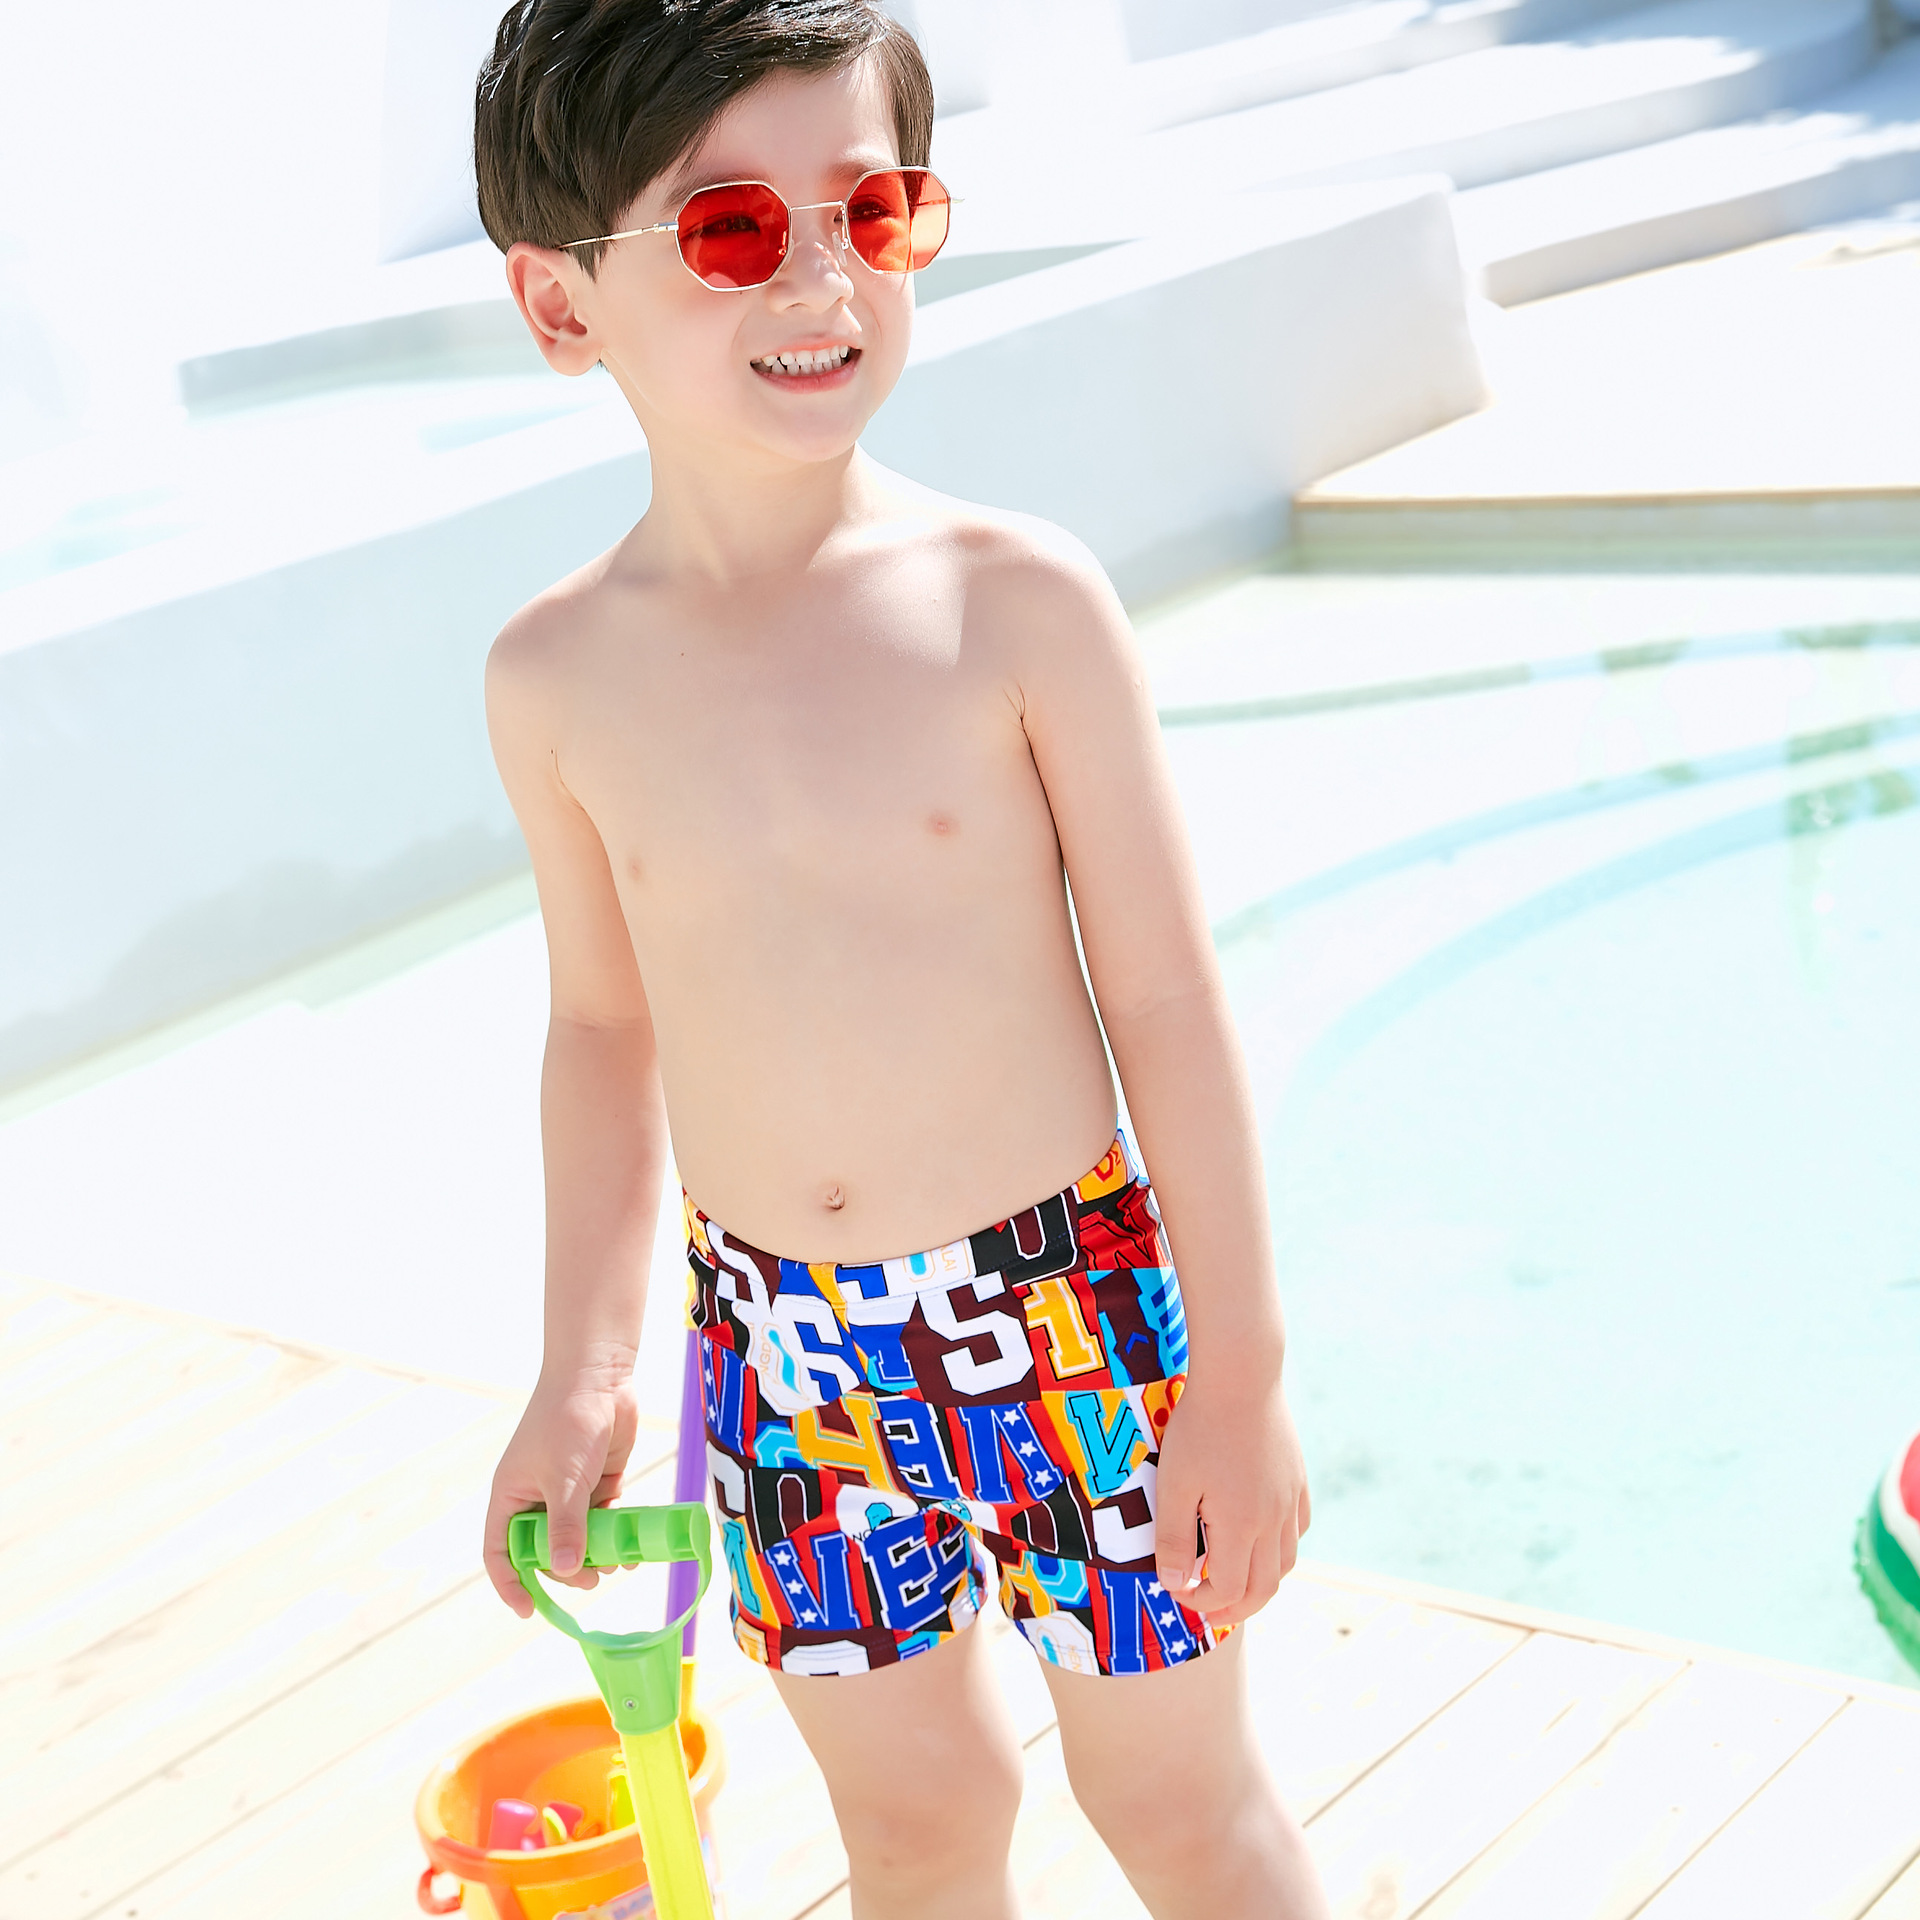 Dai Xi Si BOY'S Swimming Trunks 2019 New Style Men's Small CHILDREN'S Boxer Loose-Fit-Style Swimming Trunks With Swim Cap 9918